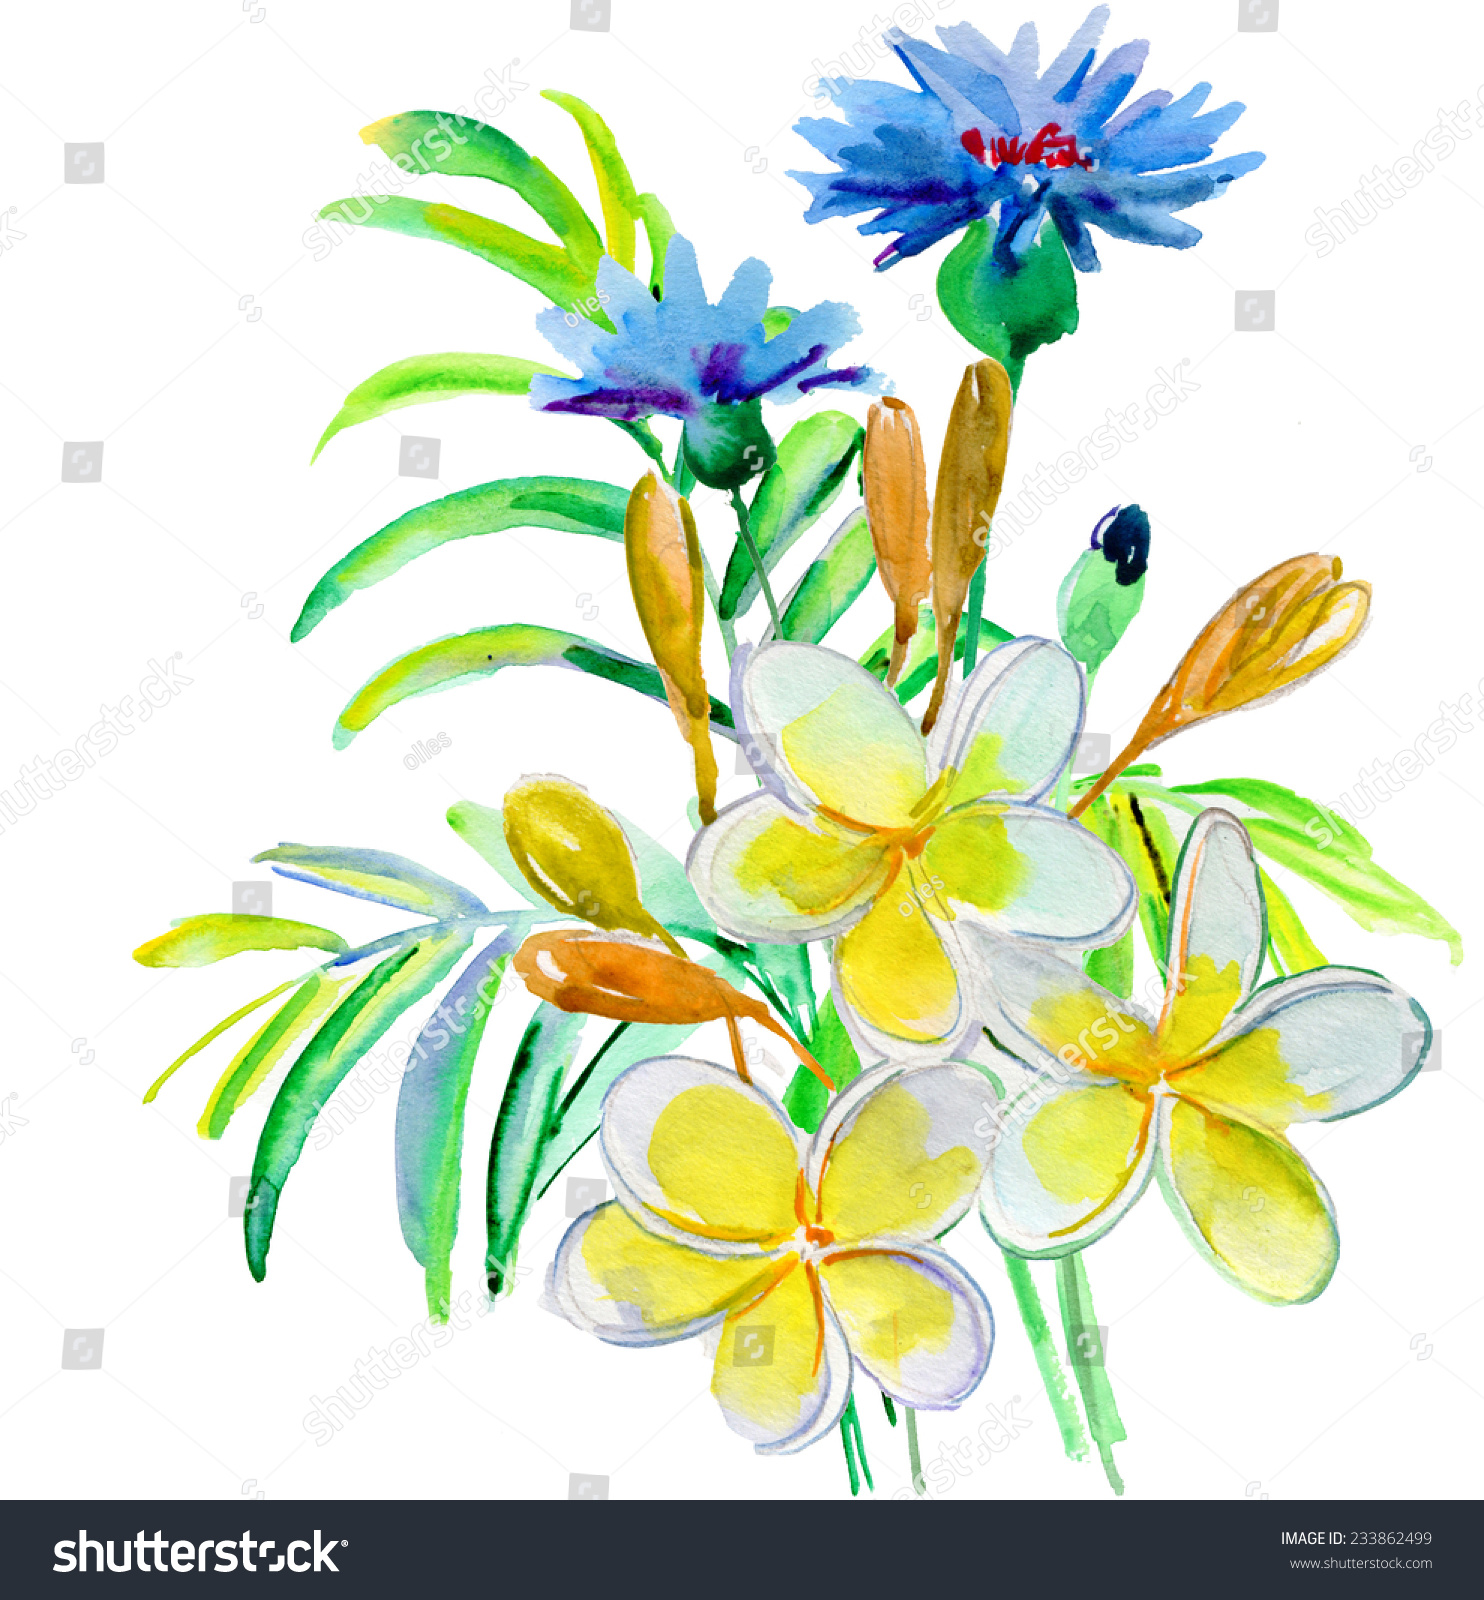 Watercolor Illustration Flower Bouquet Simple Background Stock Illustration 233862499